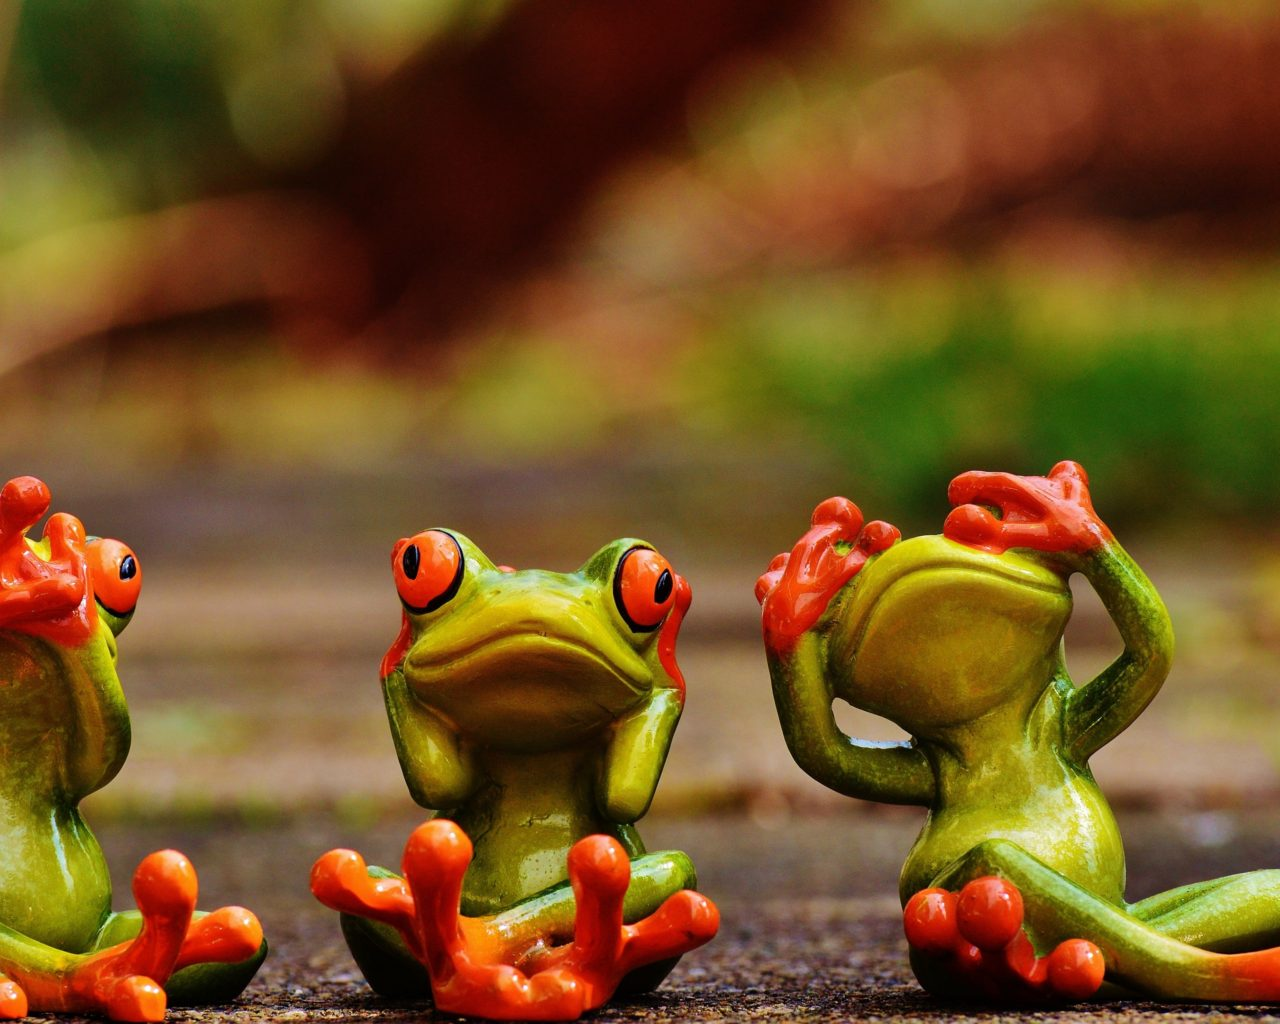 Wallpaper 3d Windows 7 1366x768 Cute Green Frogs With Red Eyes 3 D Wallpaper Hd 3840x2160